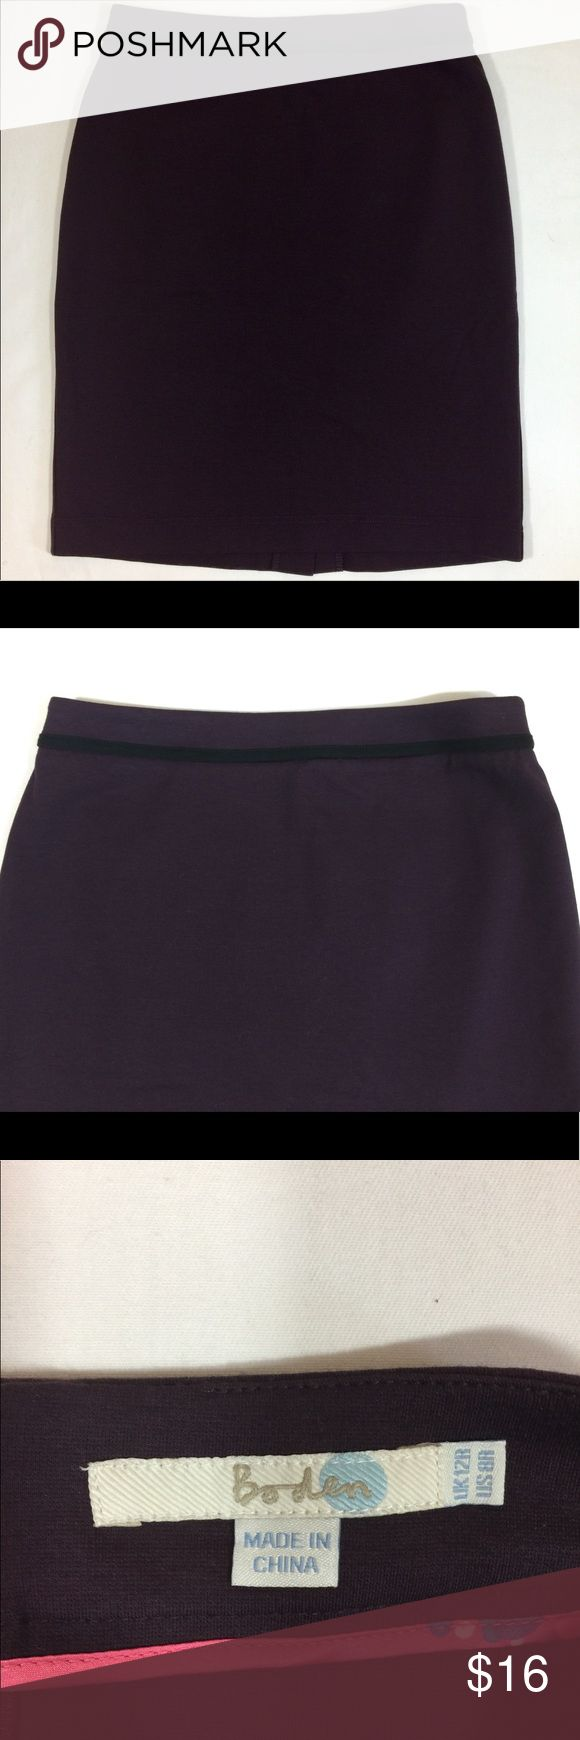 "Boden Dark Purple Pencil Skirt Size 8R Boden ""Breadwinner"" dark purple pencil skirt. Zips in back, knee length, good condition, size 8R Boden Skirts Pencil"